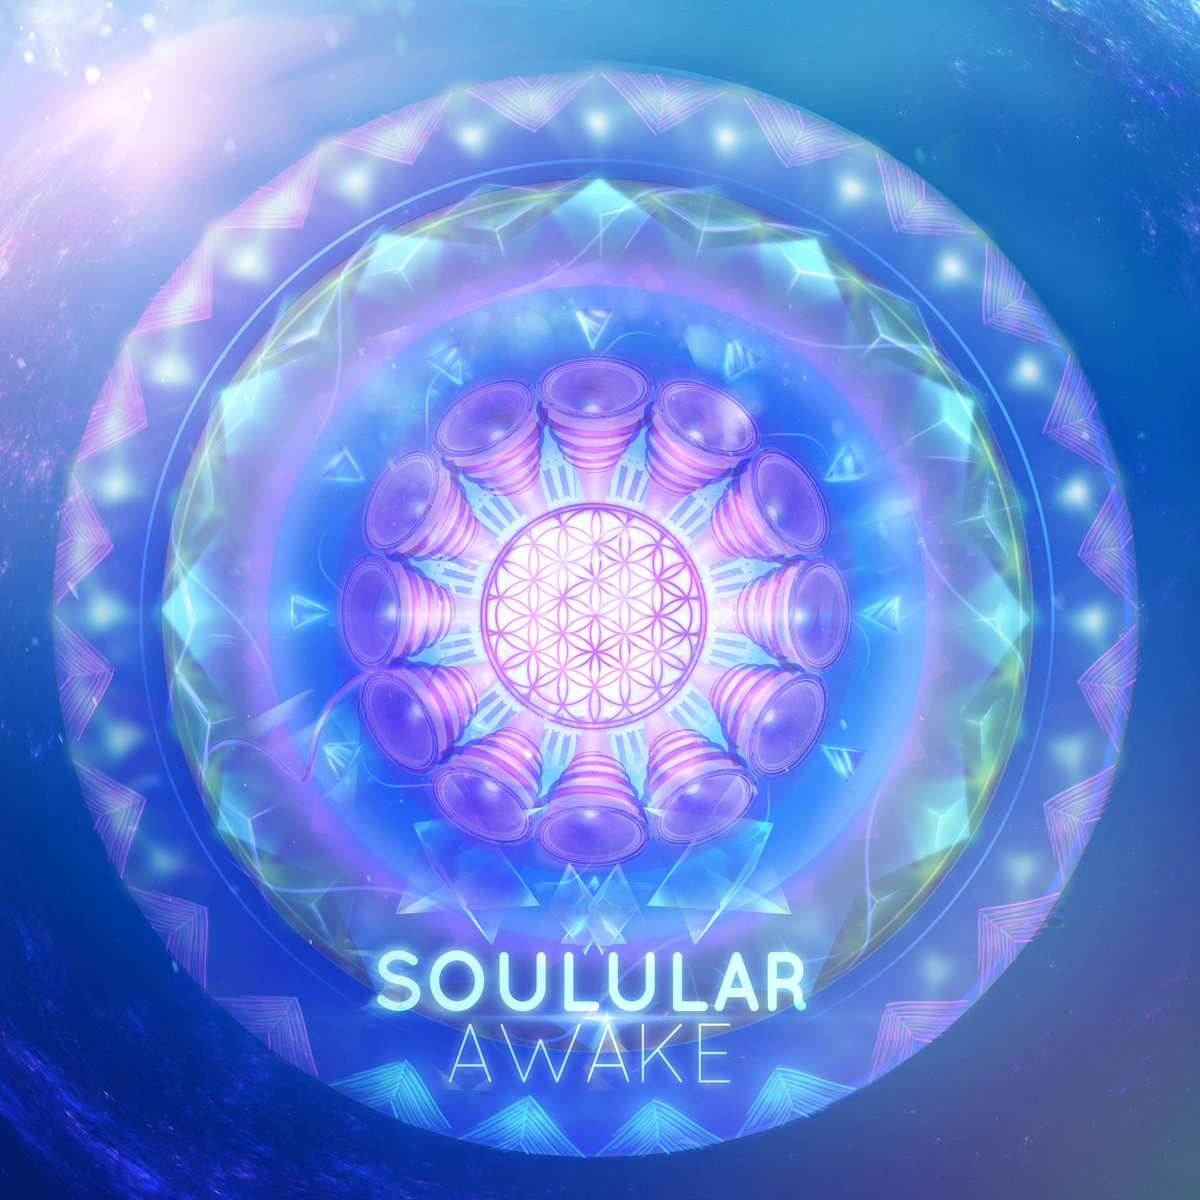 Soulular - Quartz @ 'AWAKE' album (los angeles, chill)